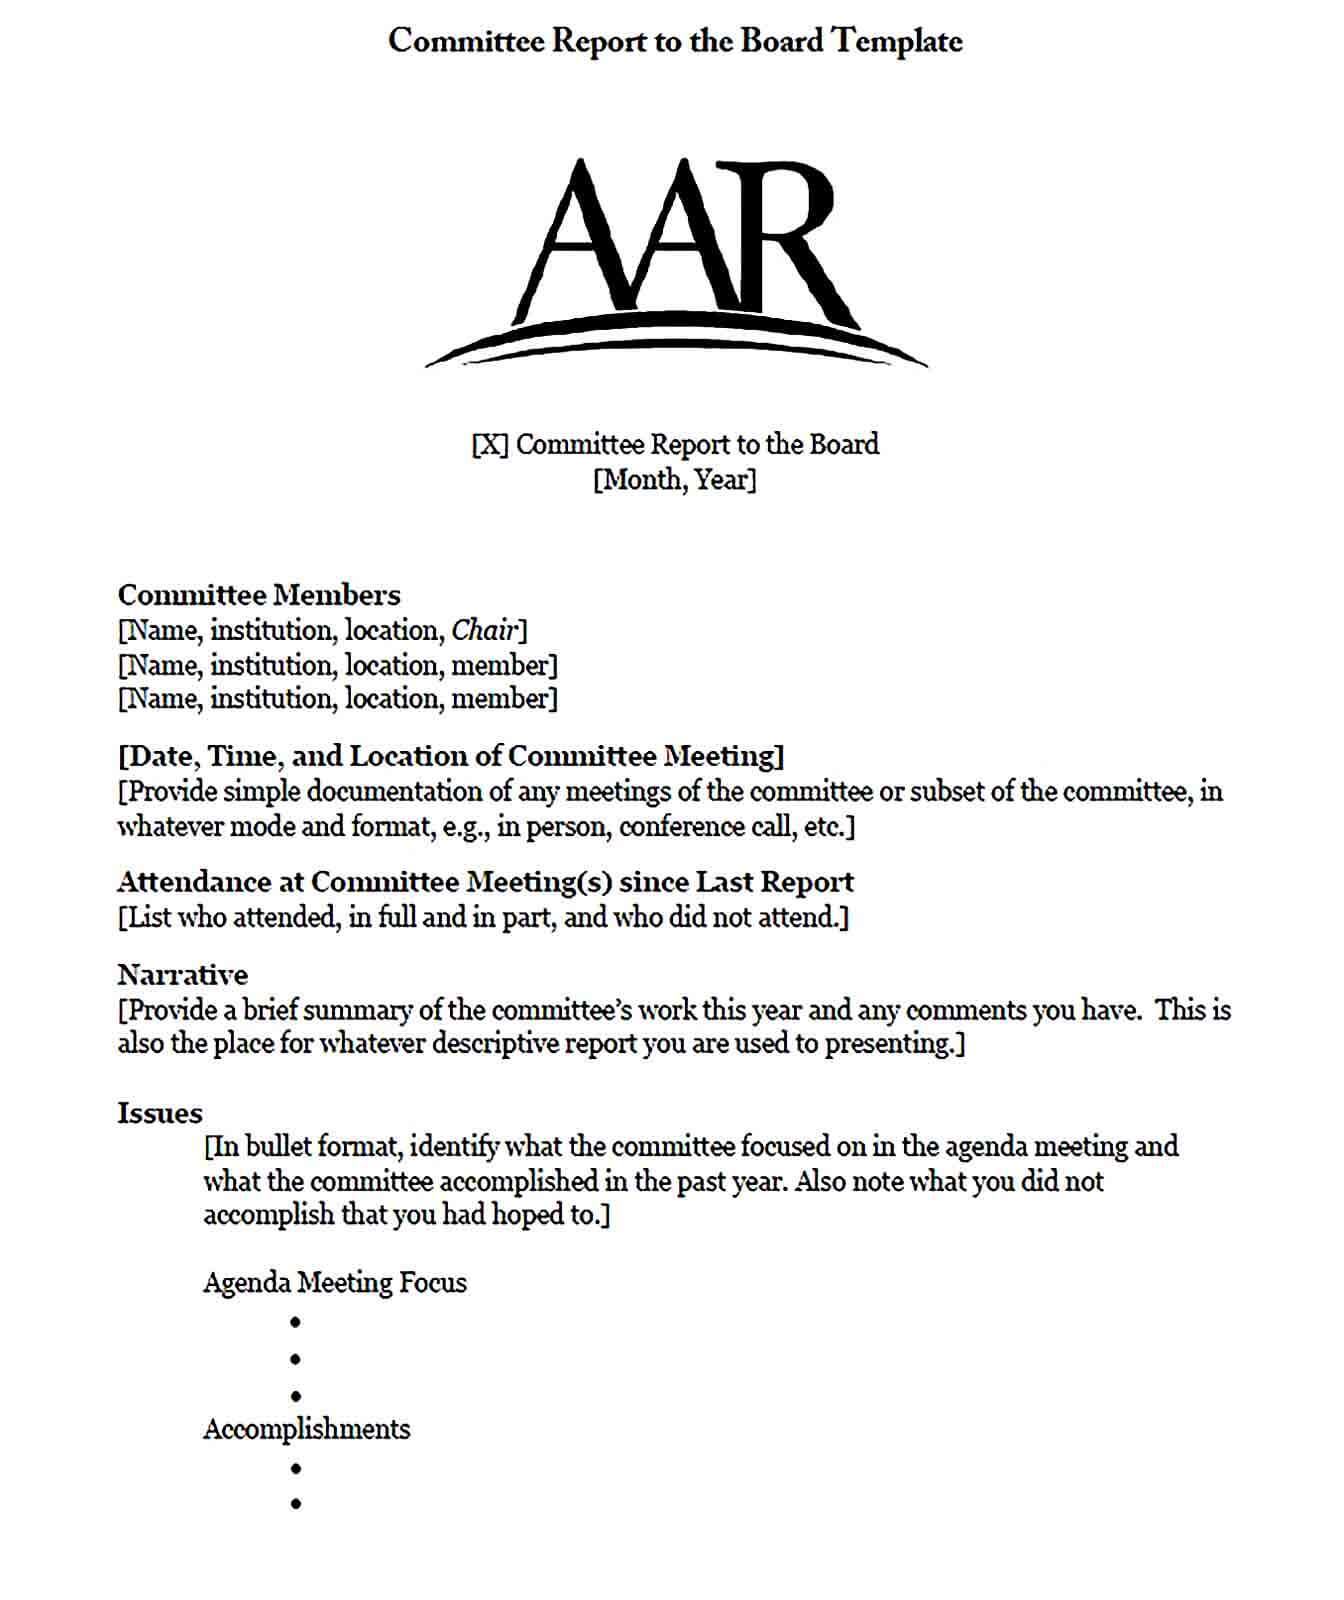 Sample Committee Report to the Board Template